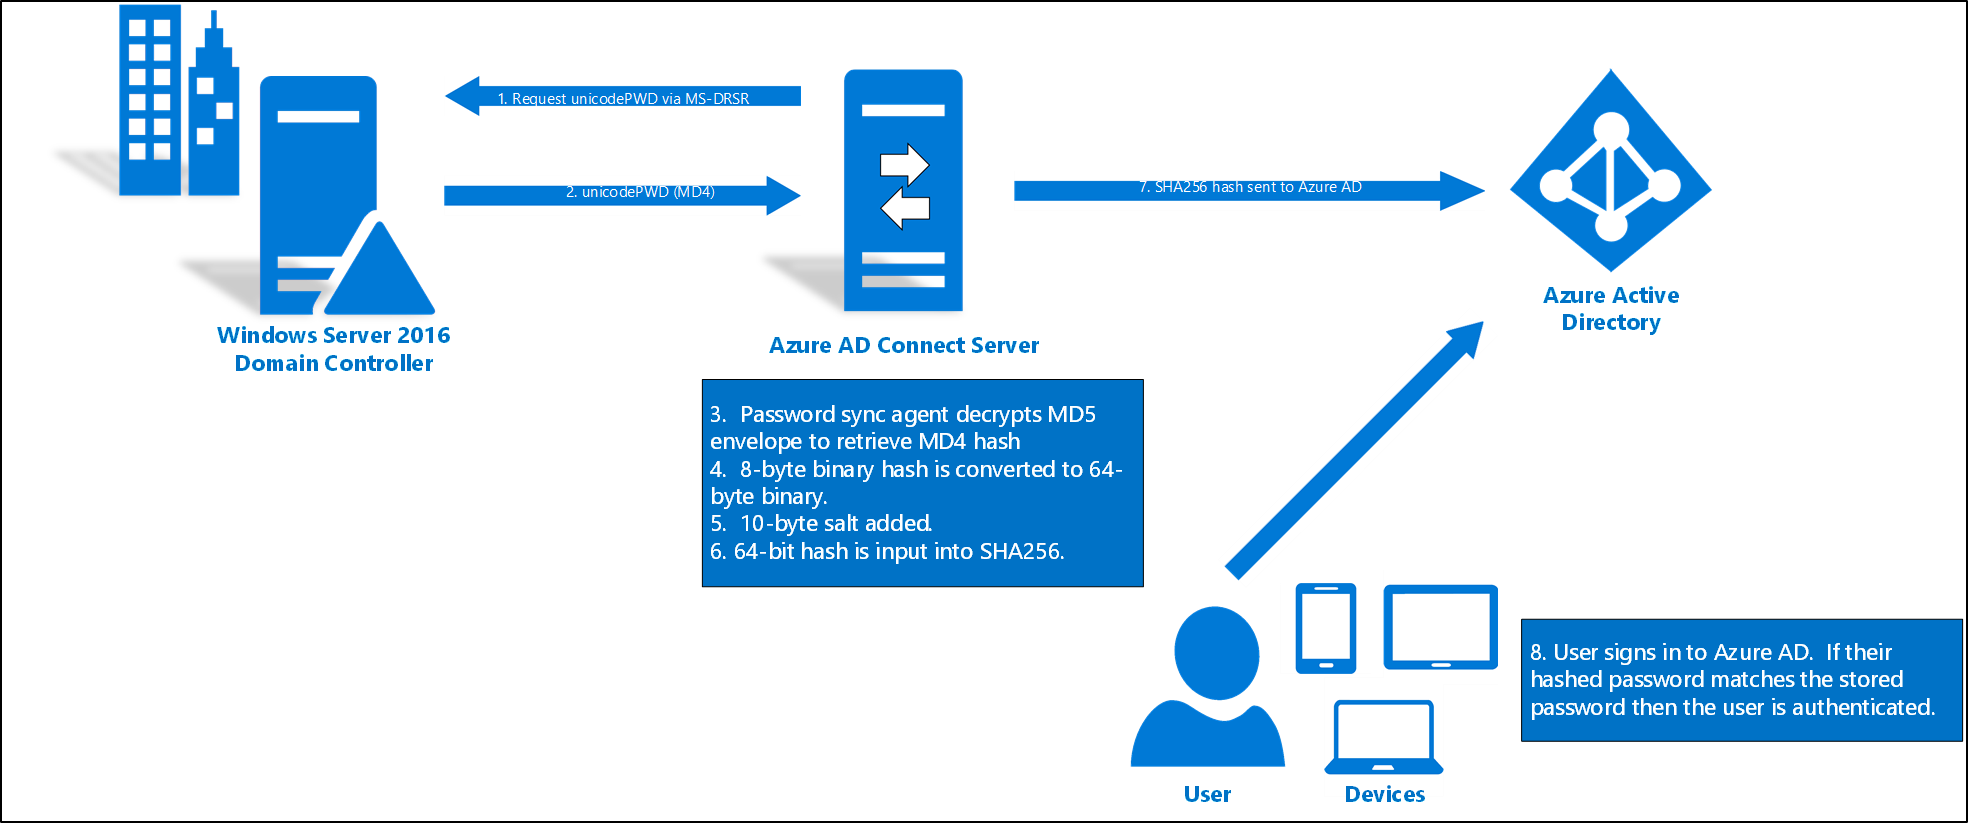 Implement password hash synchronization with Azure AD